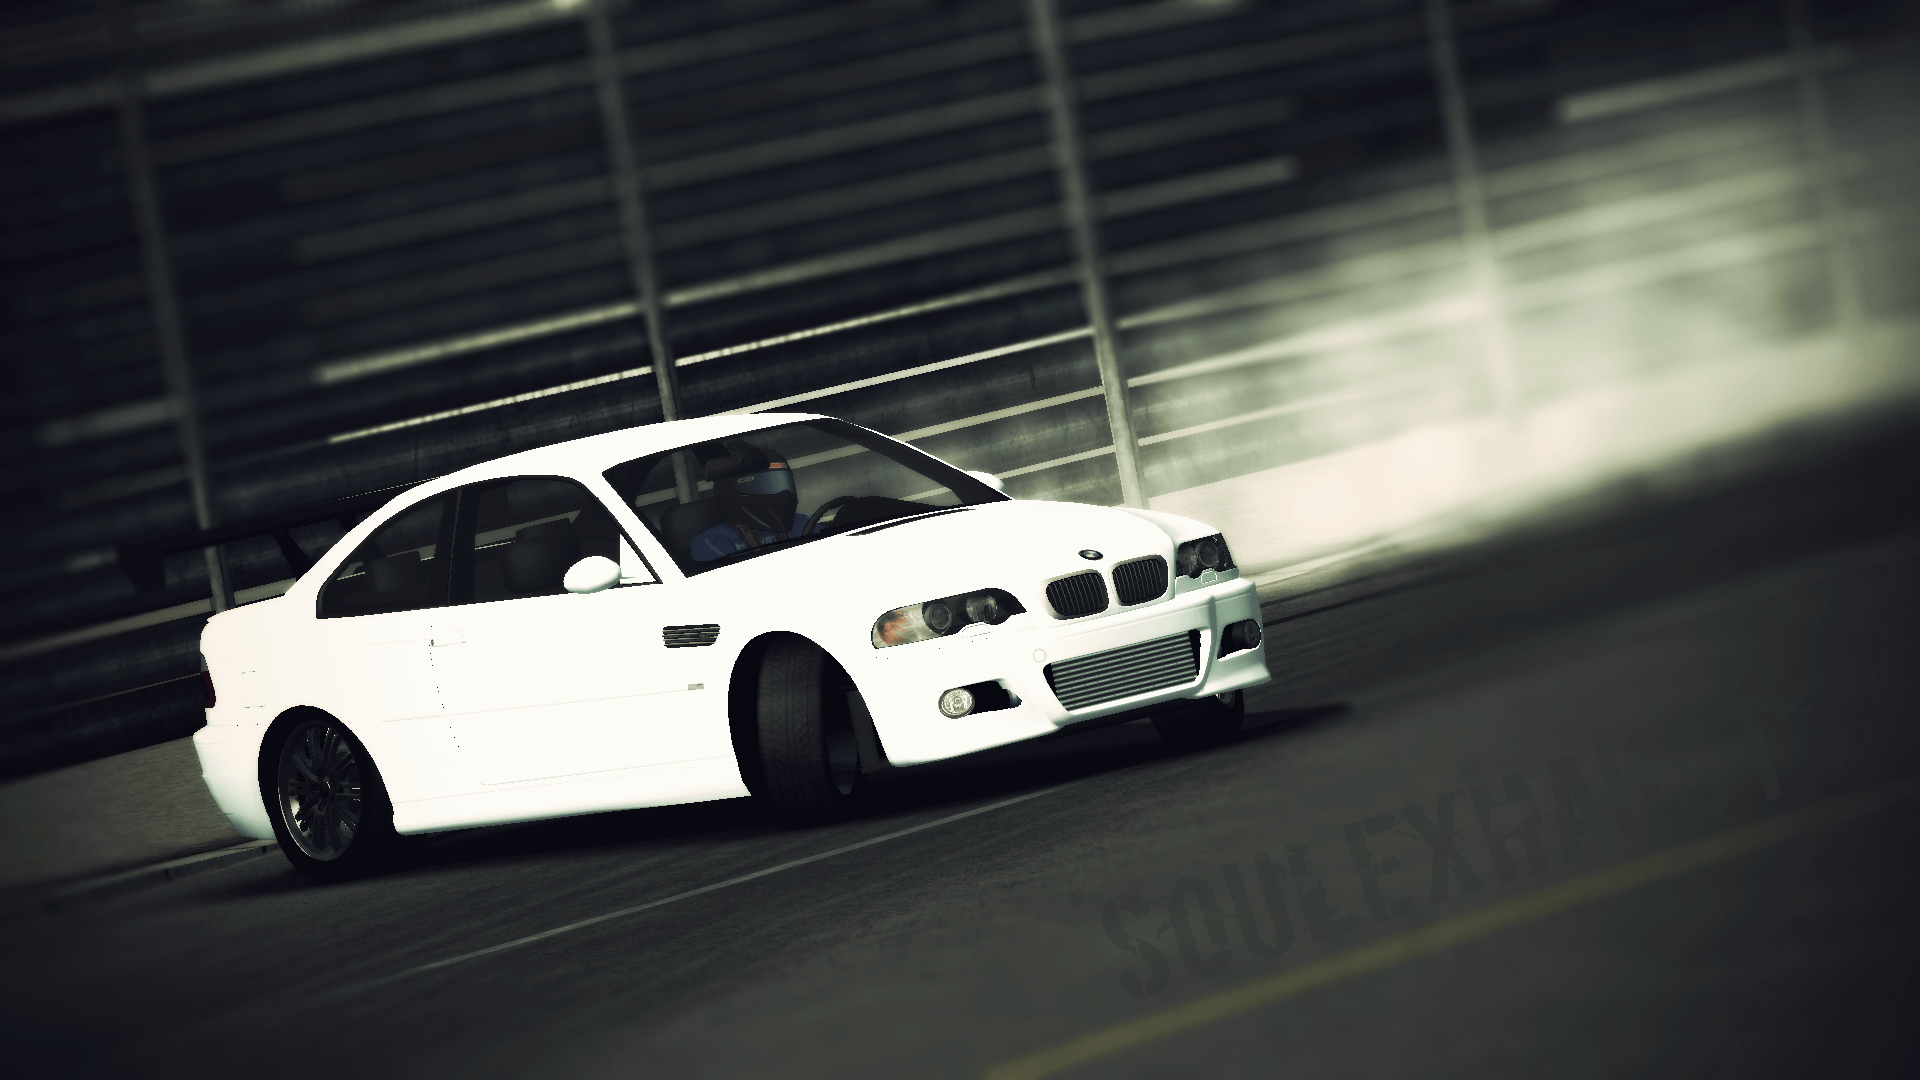 Wallpapers Hd Bmw Drift Wallpaper Cave